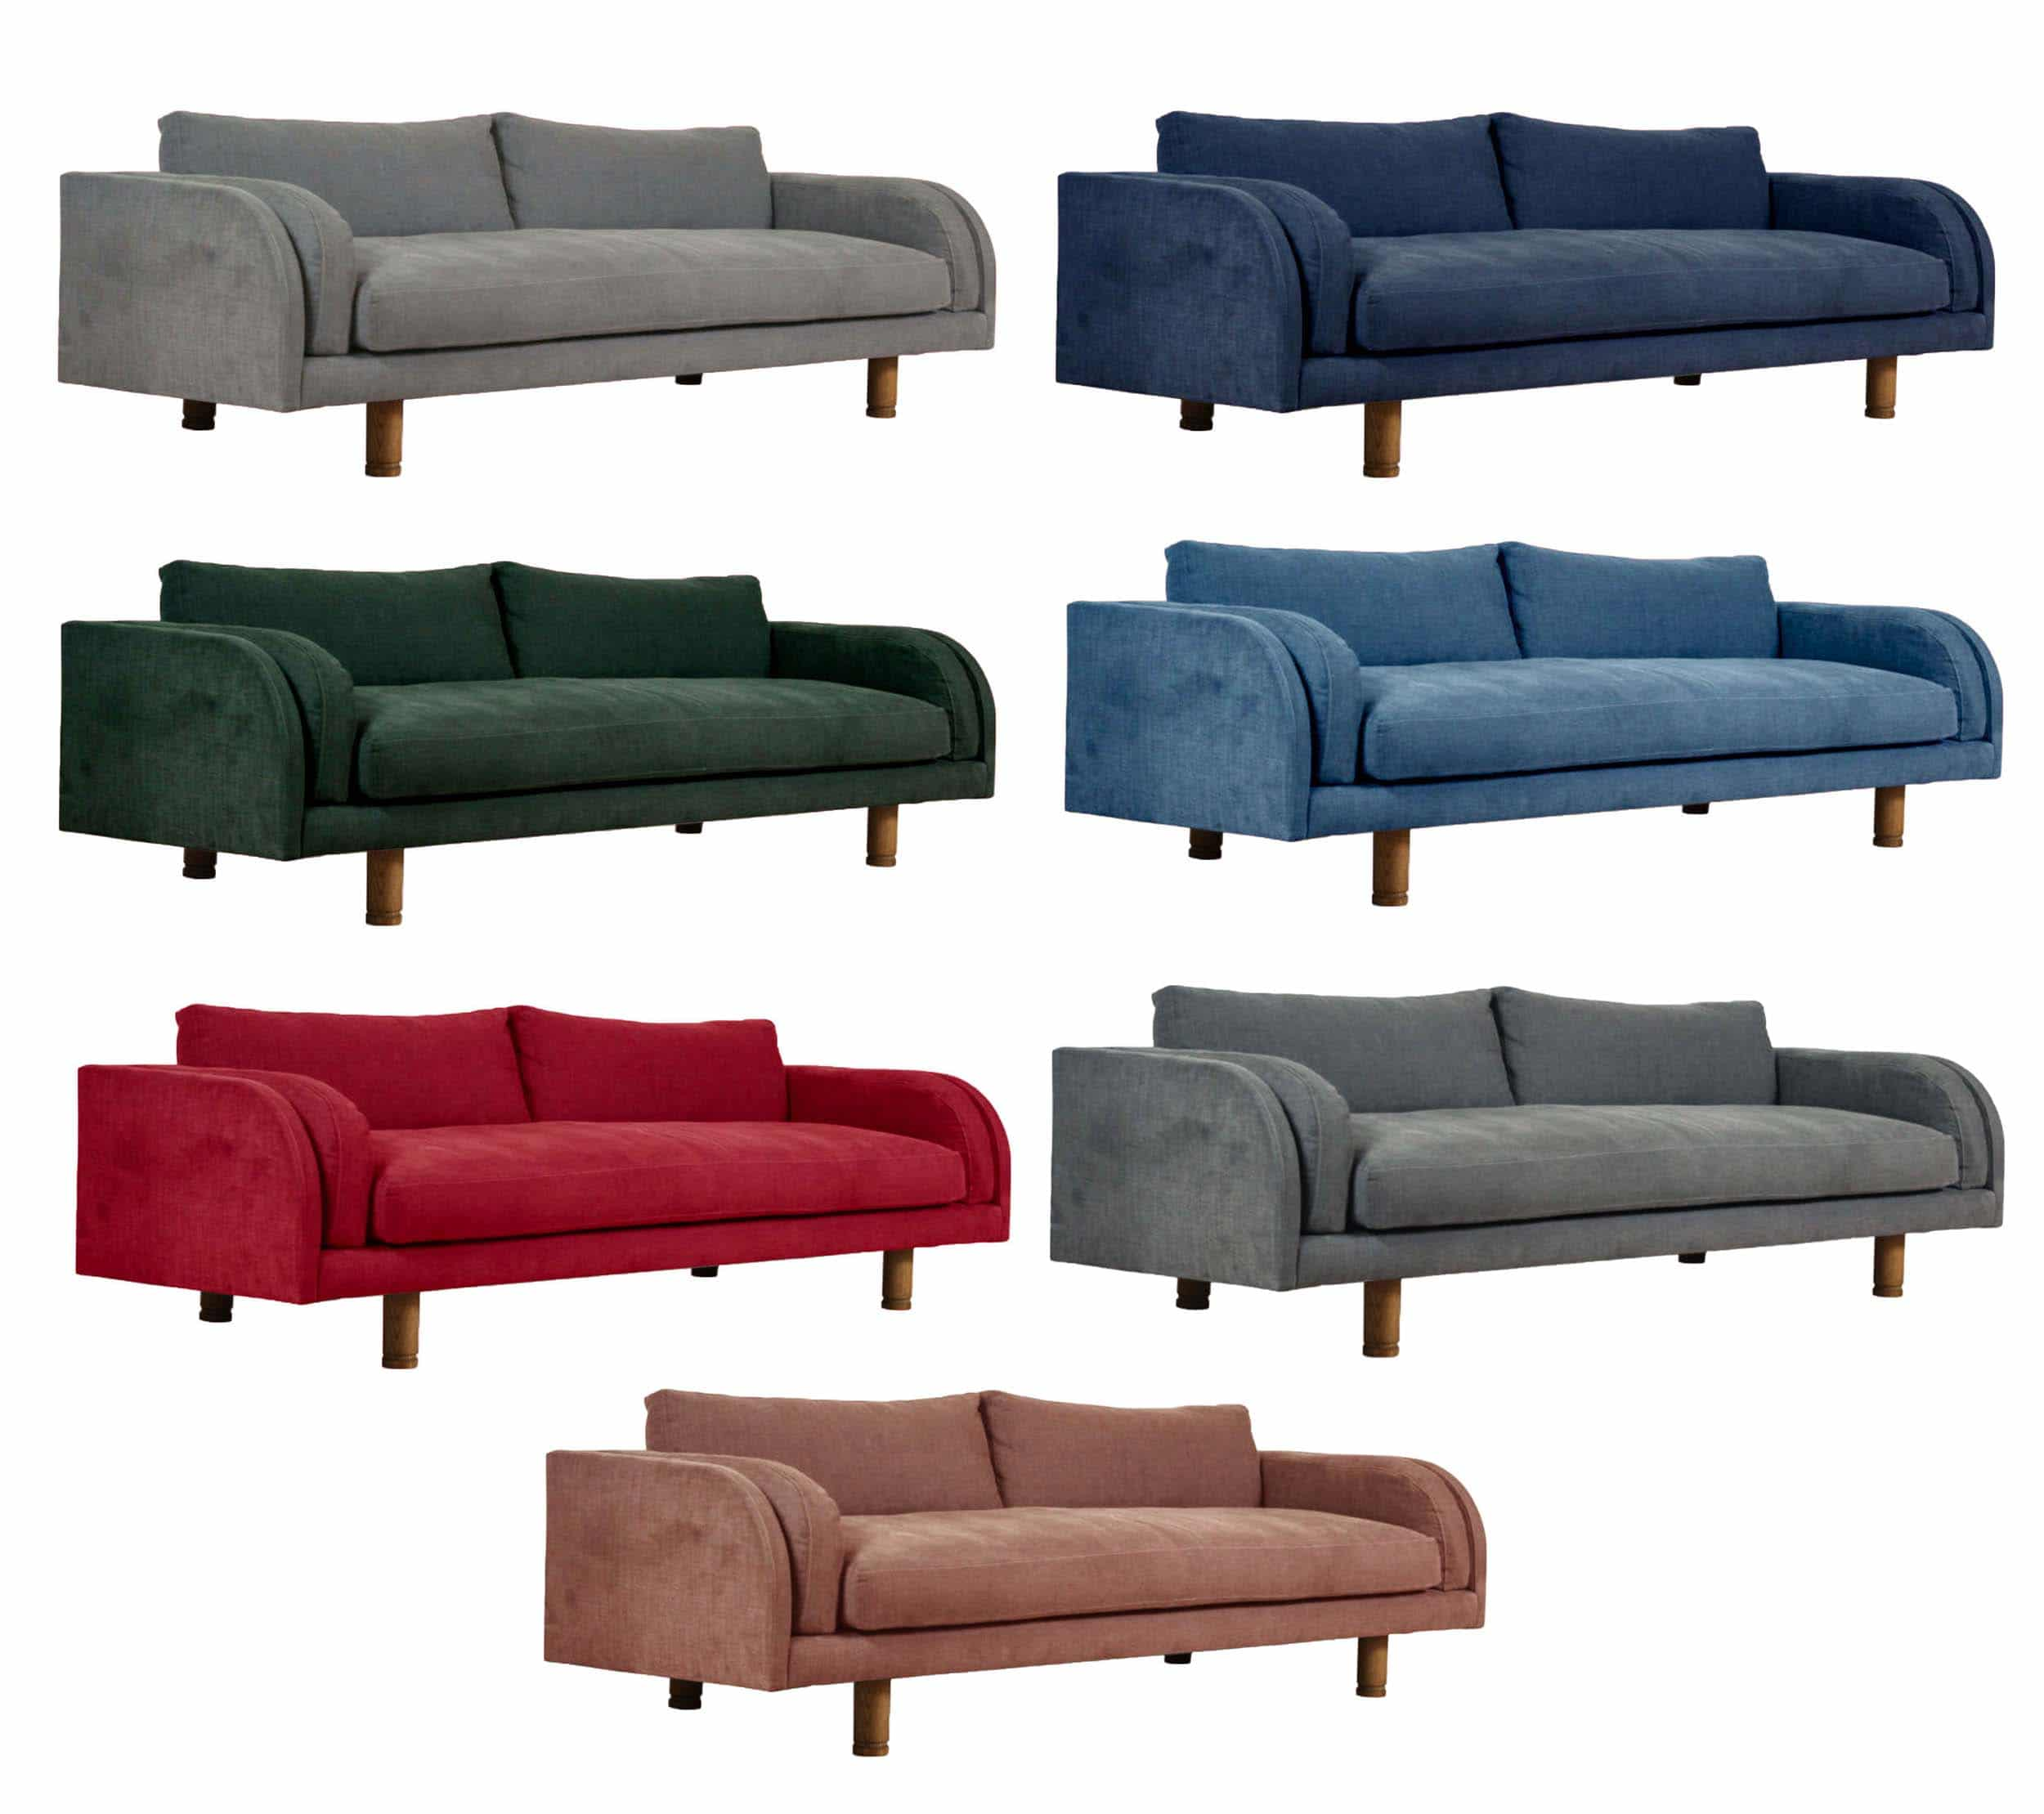 Sofa Colors Updated